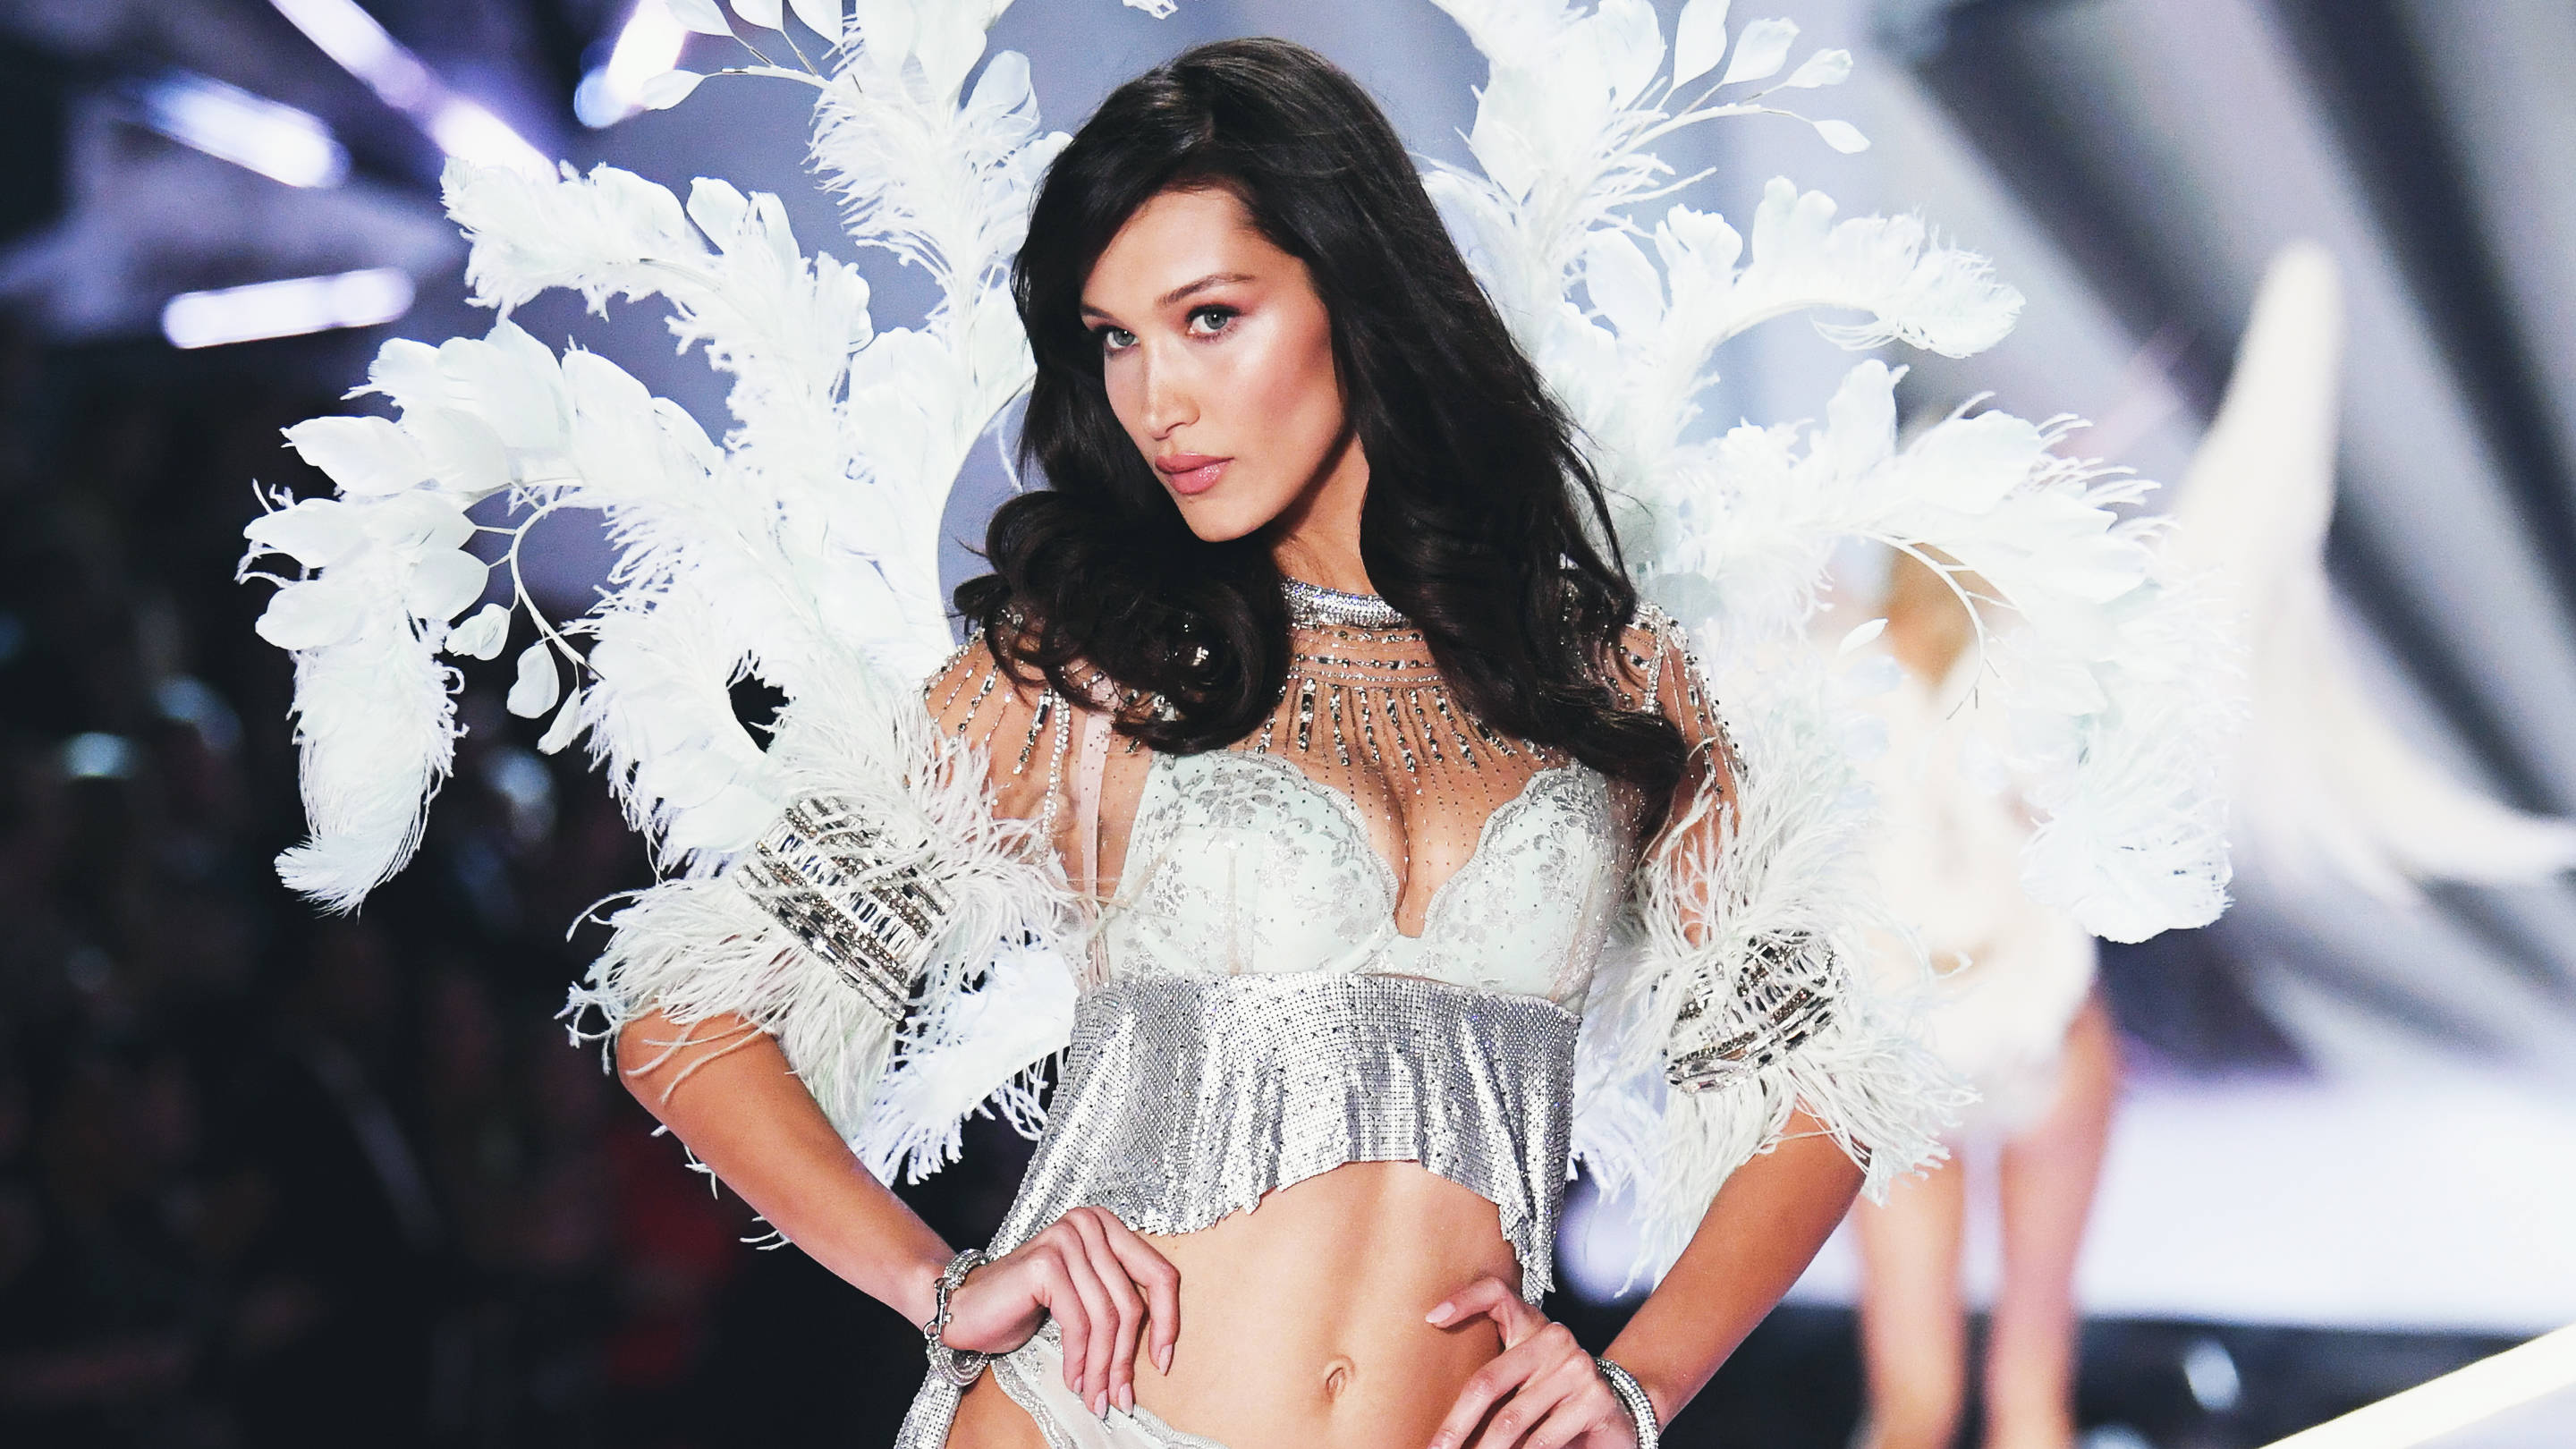 Victorias secret scandal bella hadid